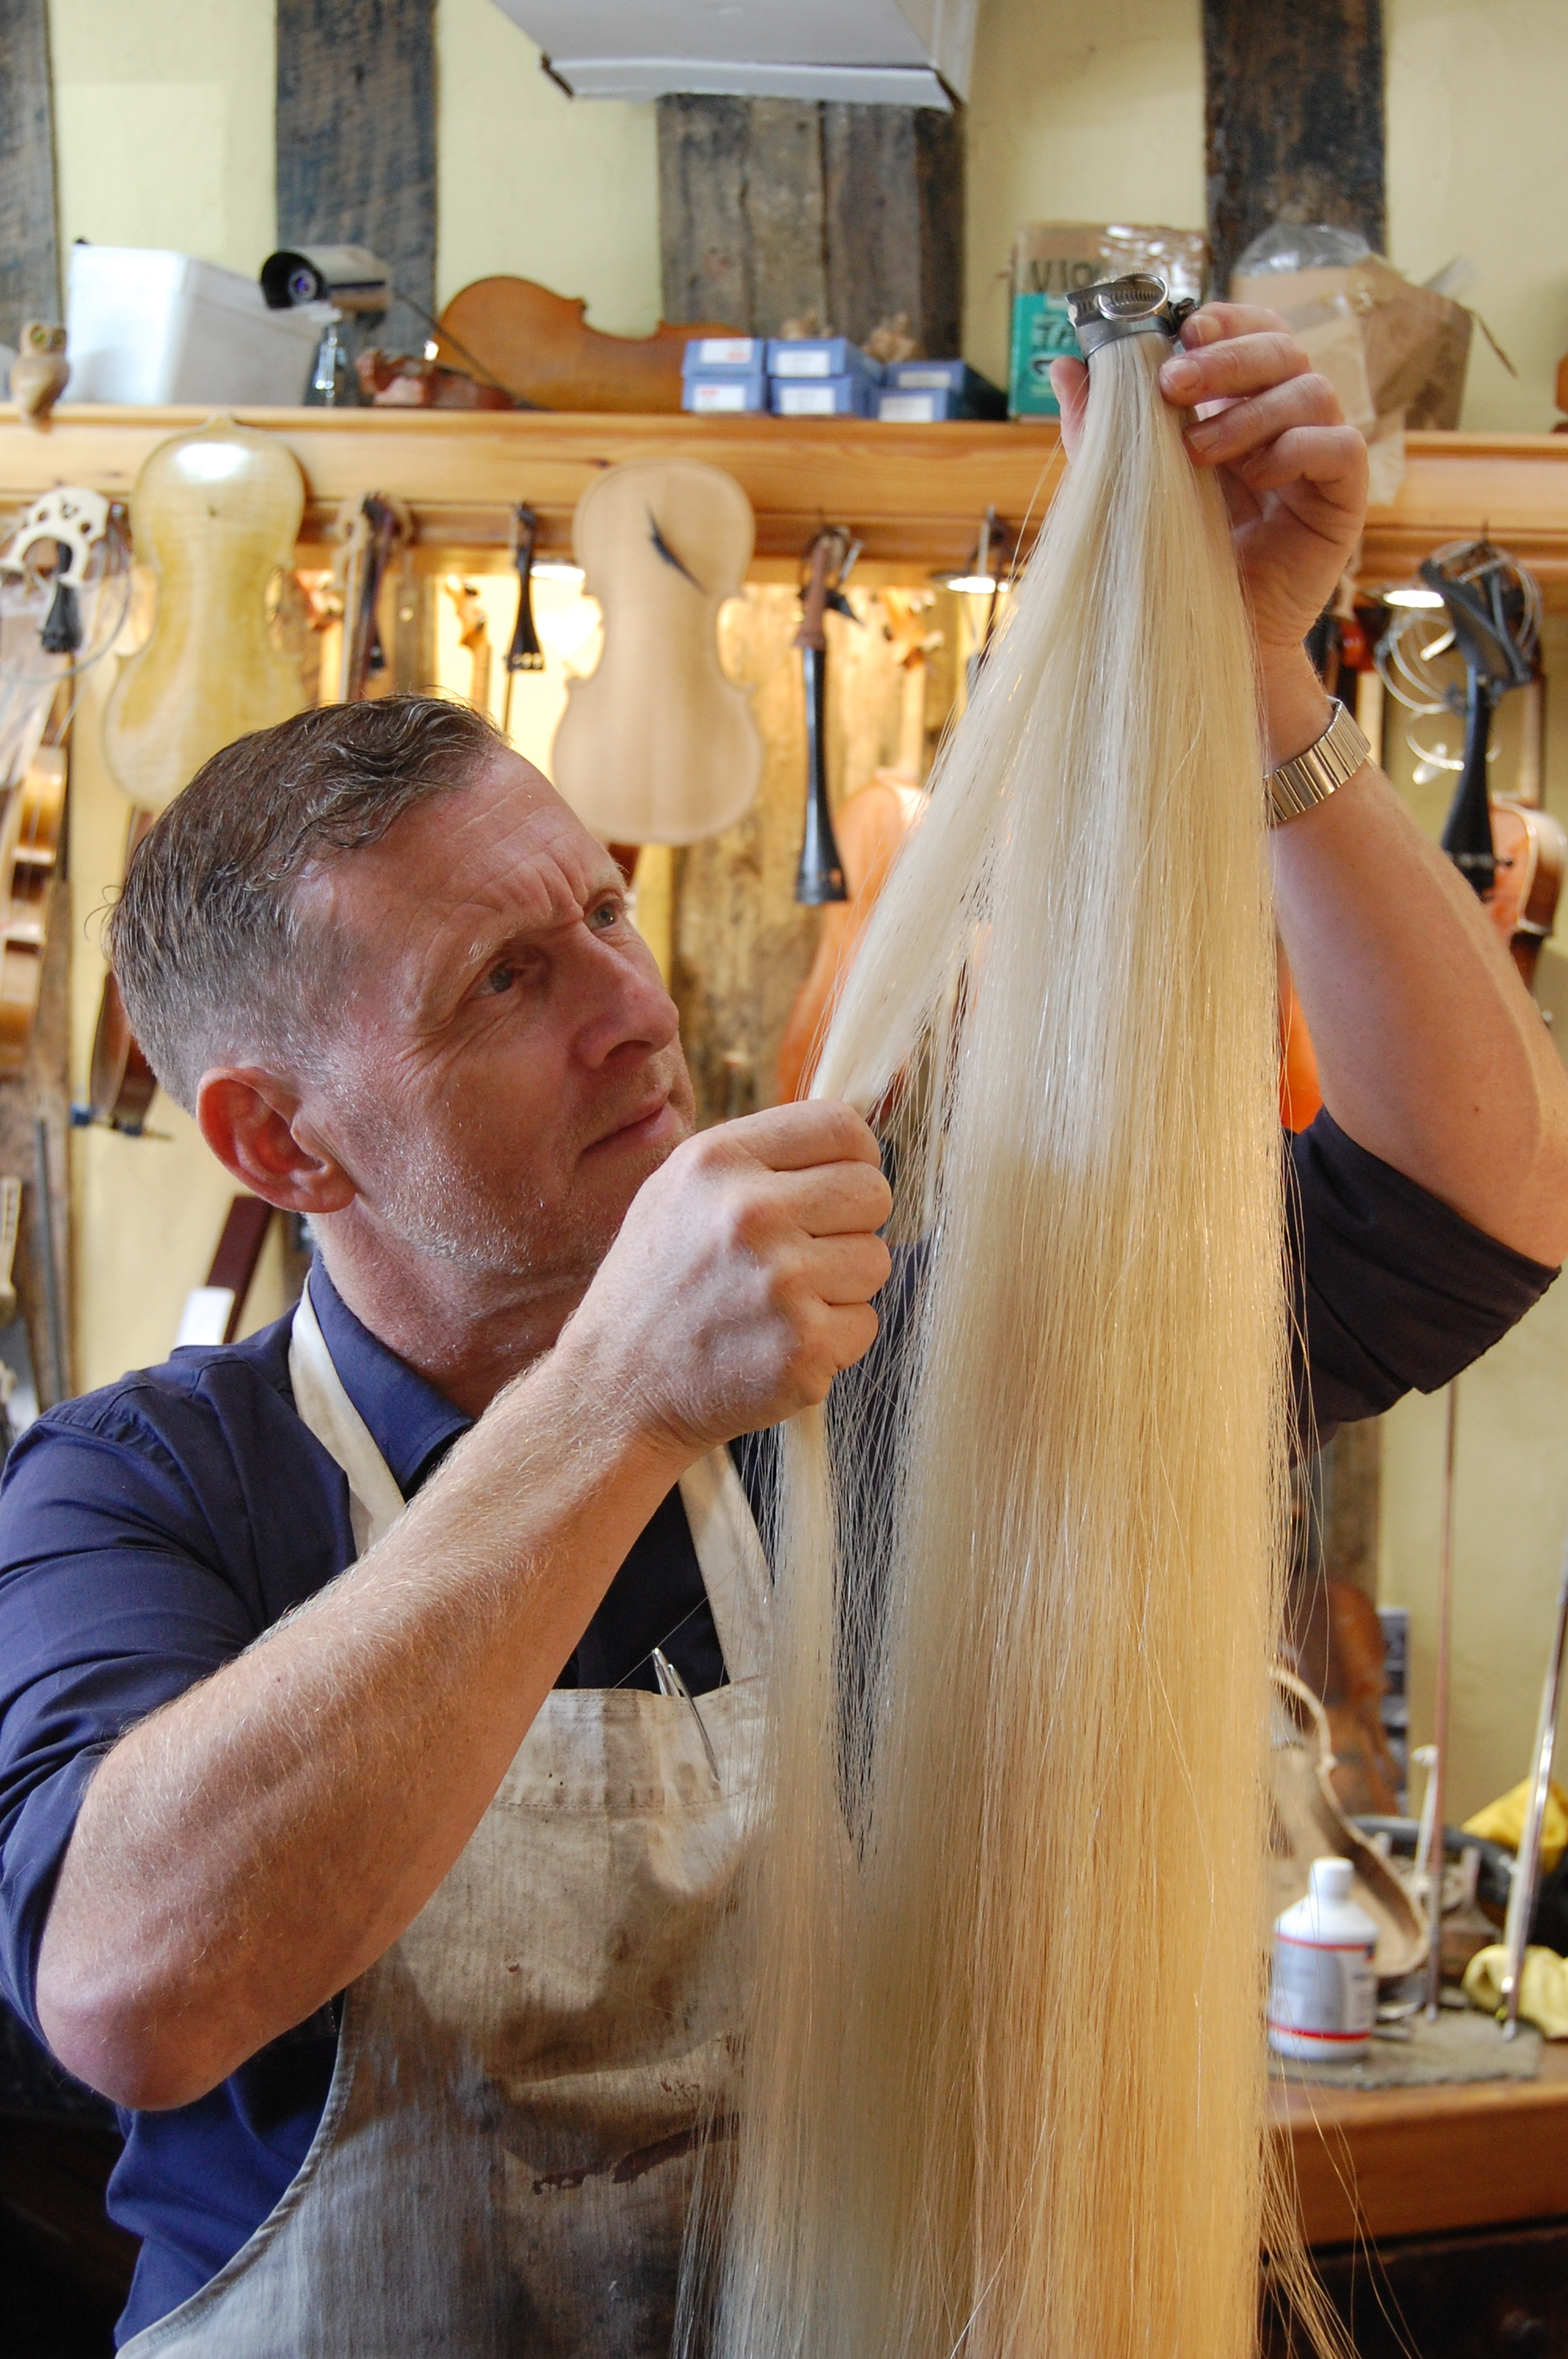 After dismantling the bow and discarding the old hair, the stick and metalwork needs to be fully cleaned.  After selecting the new hair, it must be very finely combed, ensuring that the individual hairs are not crossing one another which would cause the stick to warp. A violin bow needs aproximately 150 hairs, the hank pictured above lasts us around 2 months!